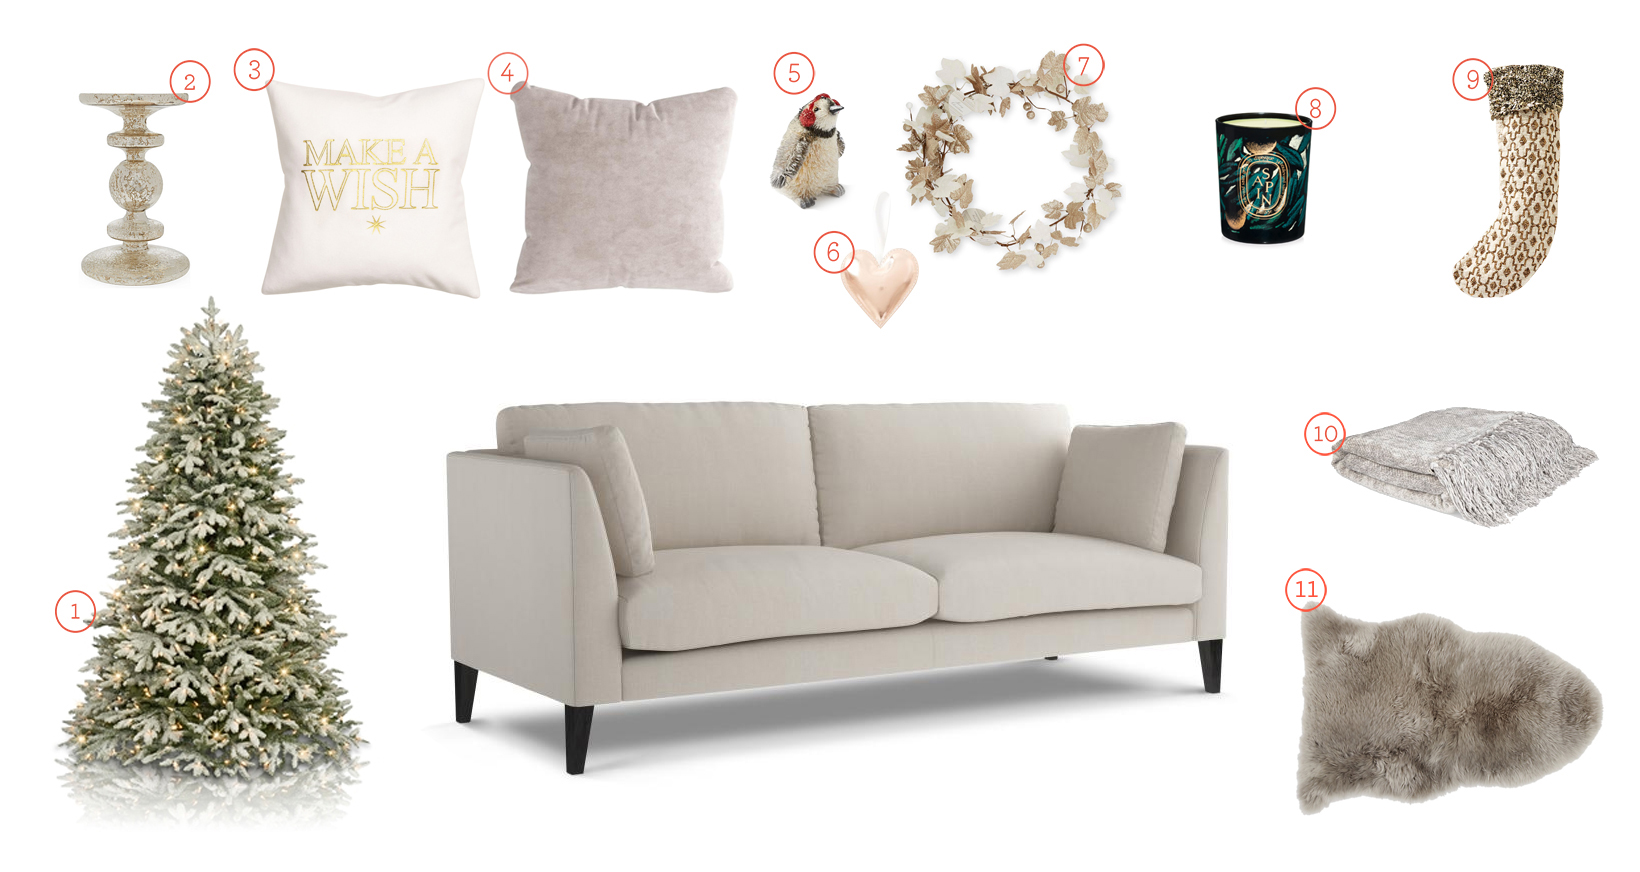 Get The Look - Philo Sofa for the Christmas Living Room